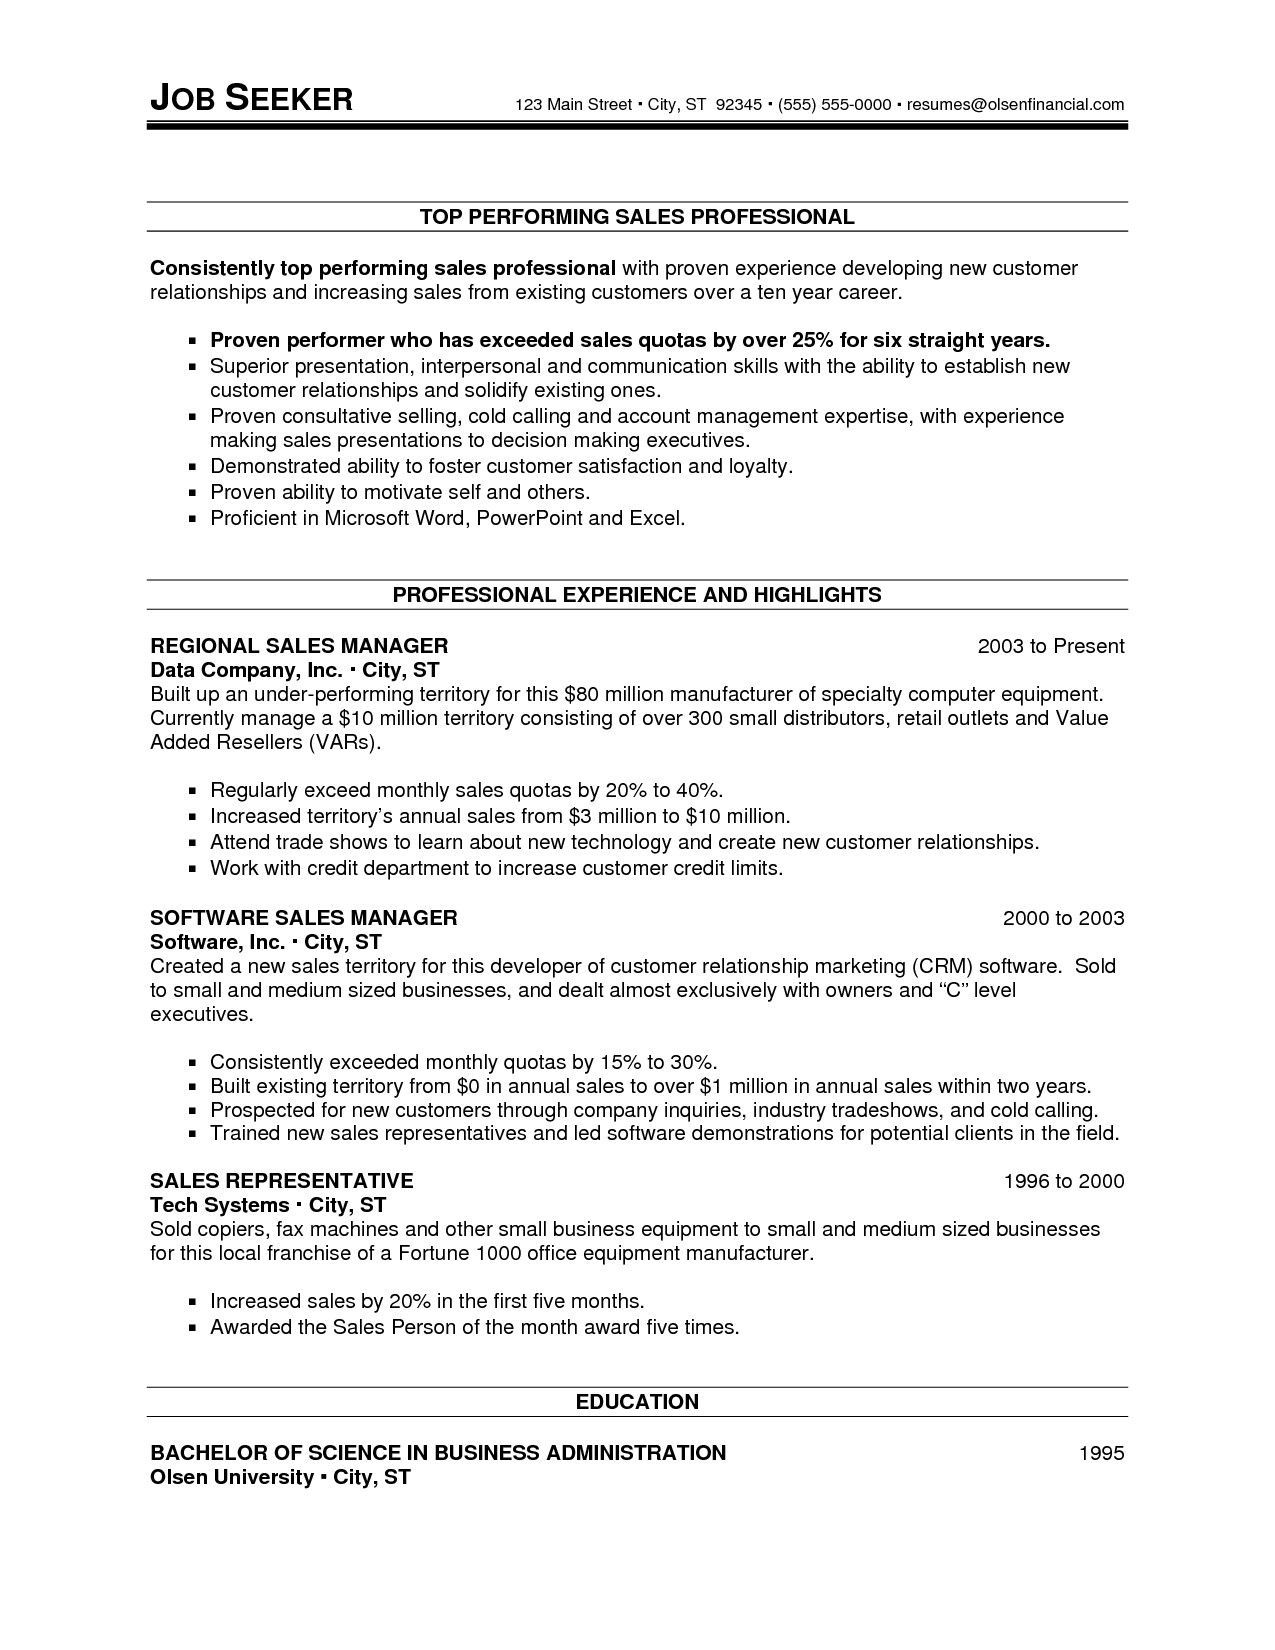 Resume Templates For 30 Years Experience Resume Templates Job Resume Examples Sales Resume Examples